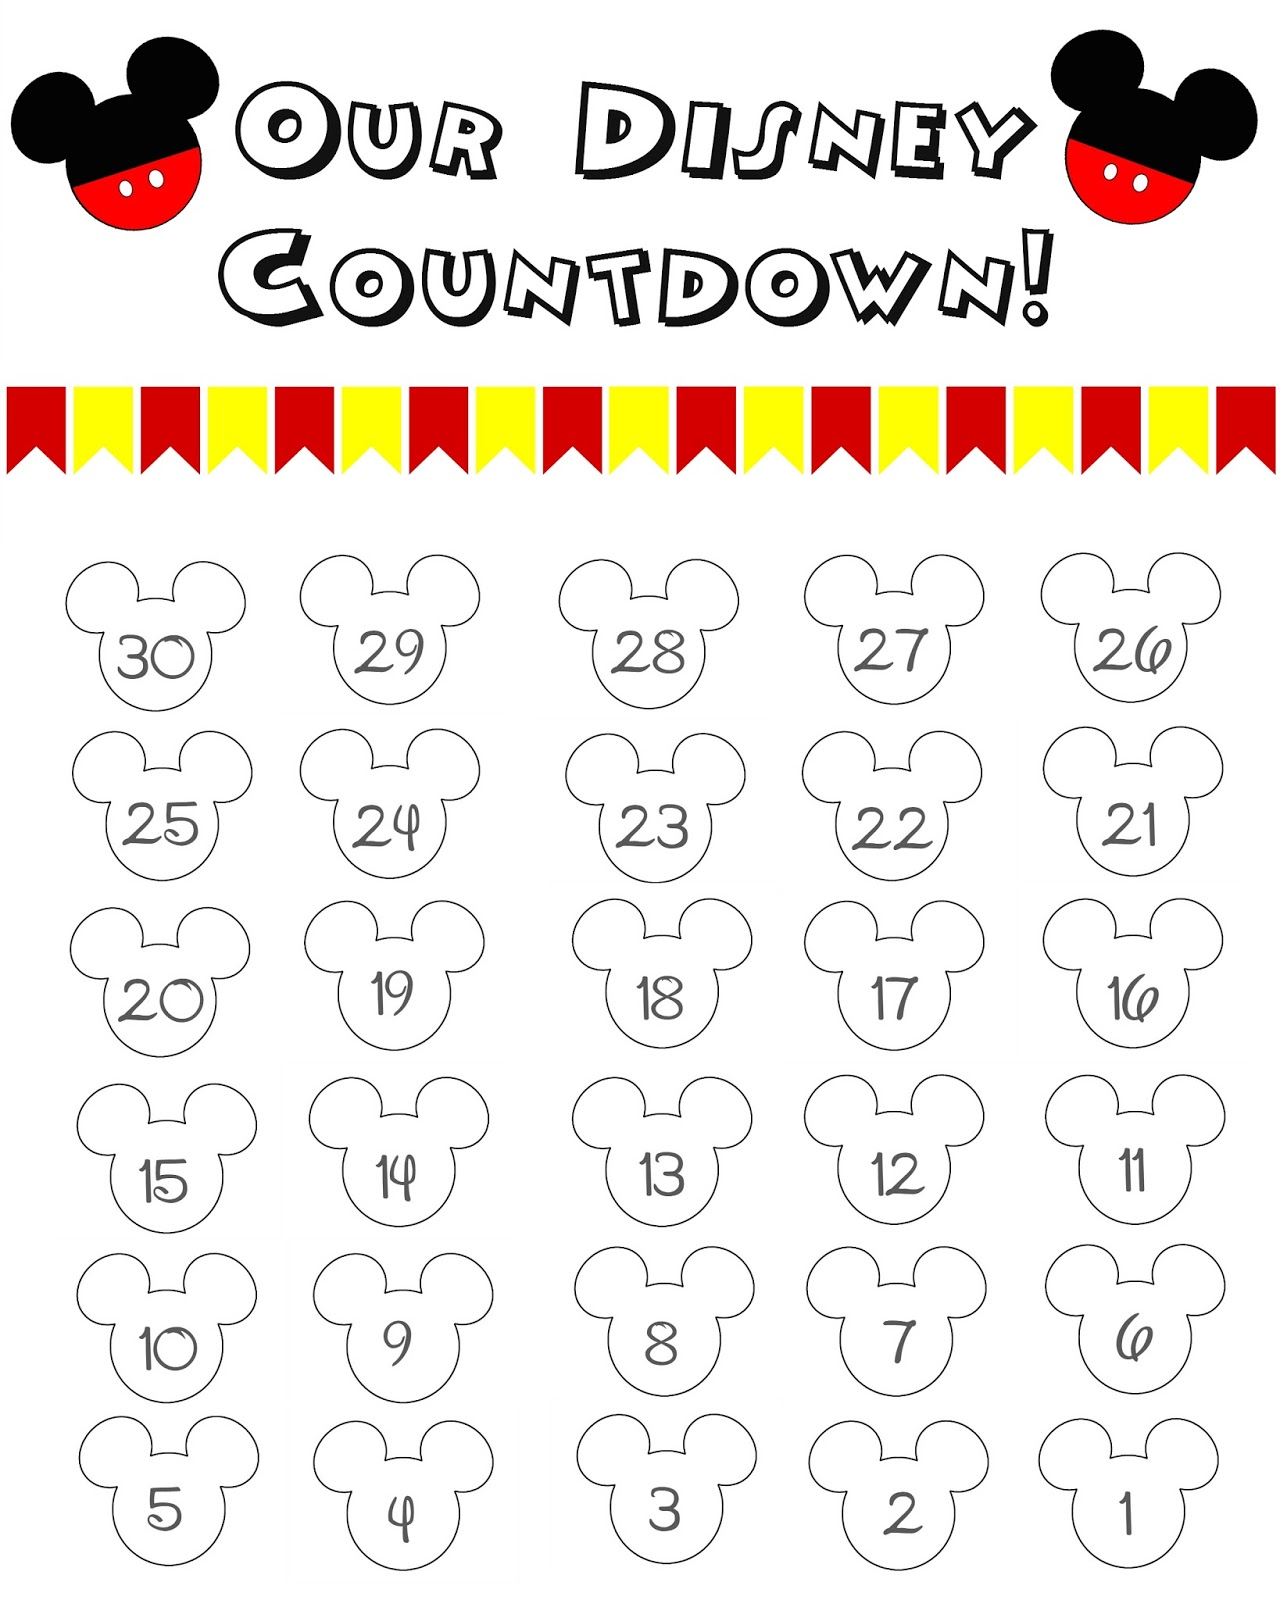 10 Fun Printable Disney Countdown Calendars